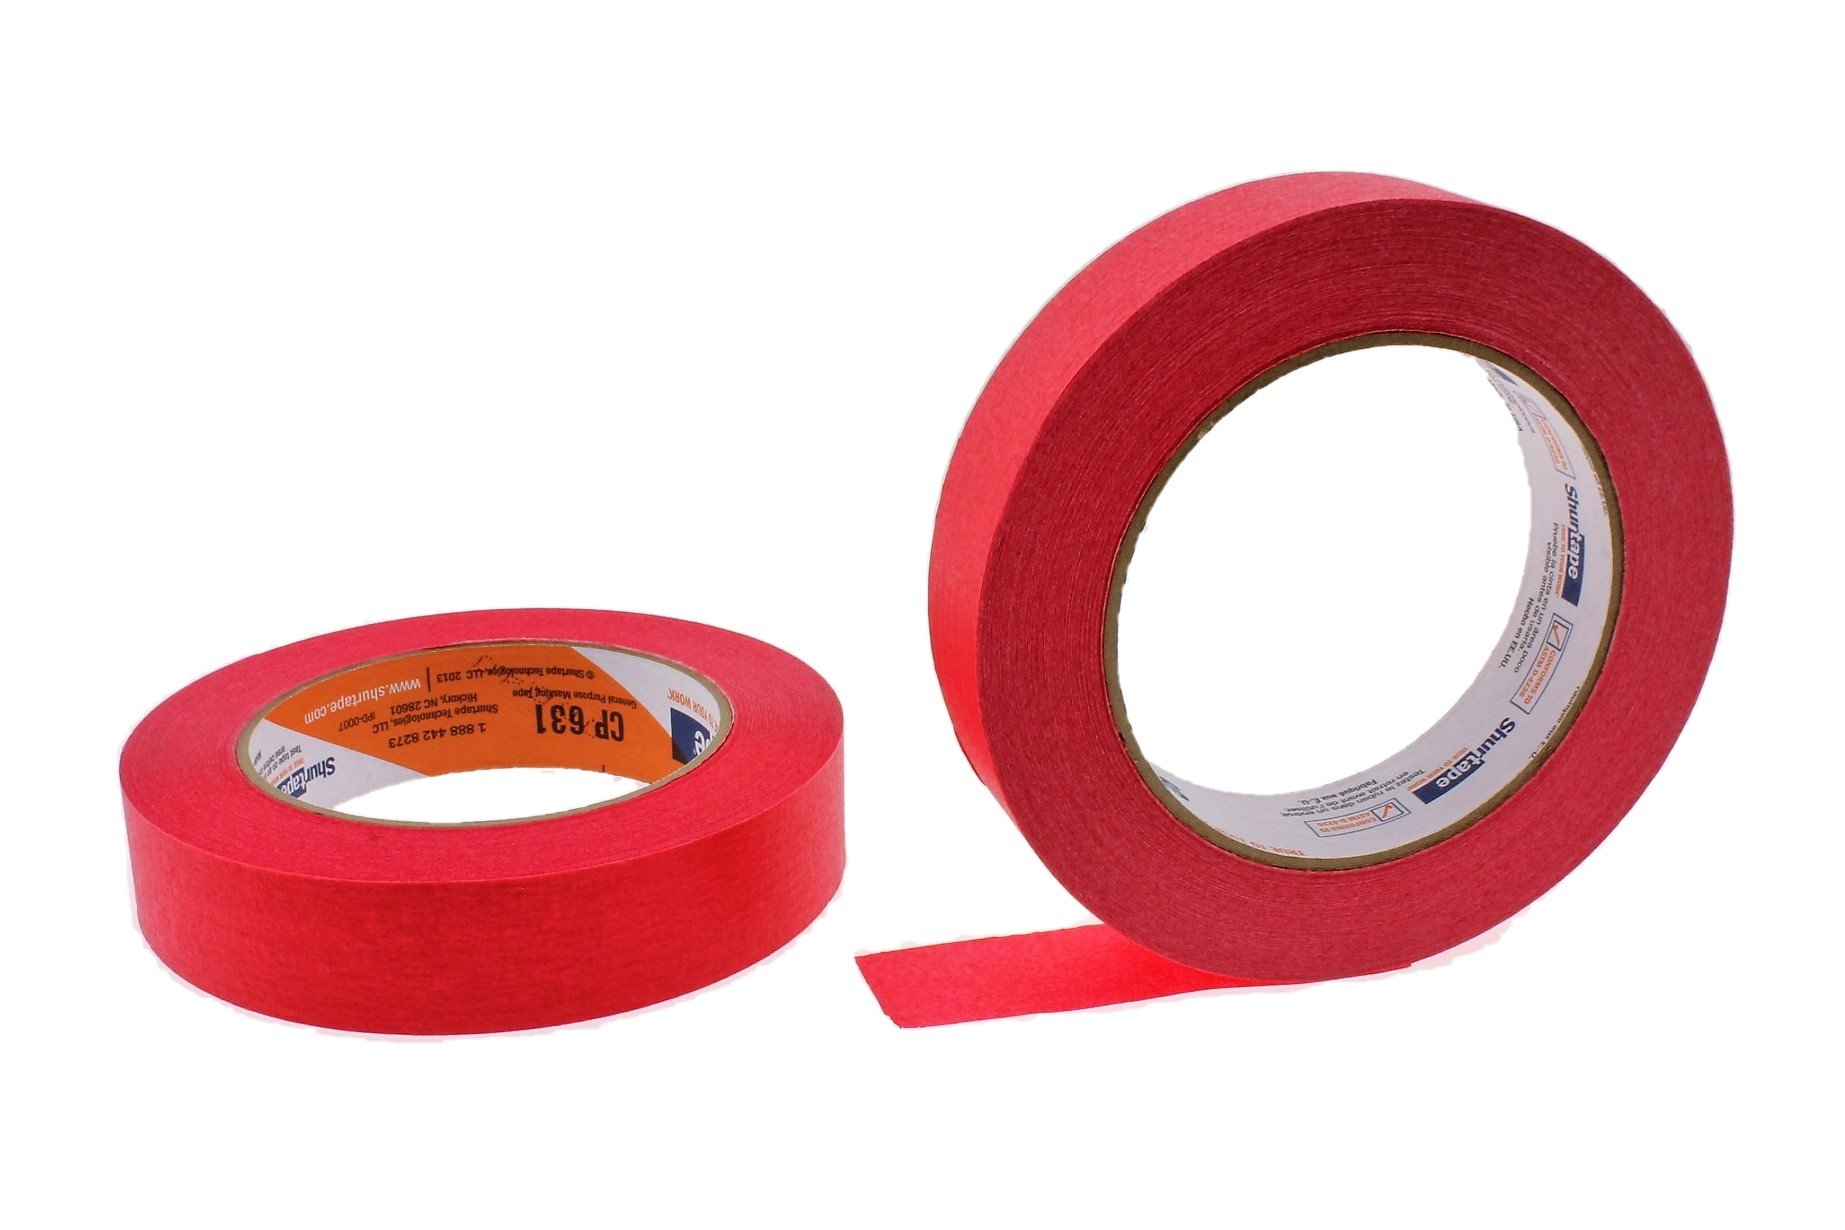 2pk of 1'' in x 60yd Red Masking Tape Extra Sticky PRO Grade High Stick Special Project Painters Tape Painting Trim Arts Crafts School Home Office 21 Days 24MM x 55M .94 inch